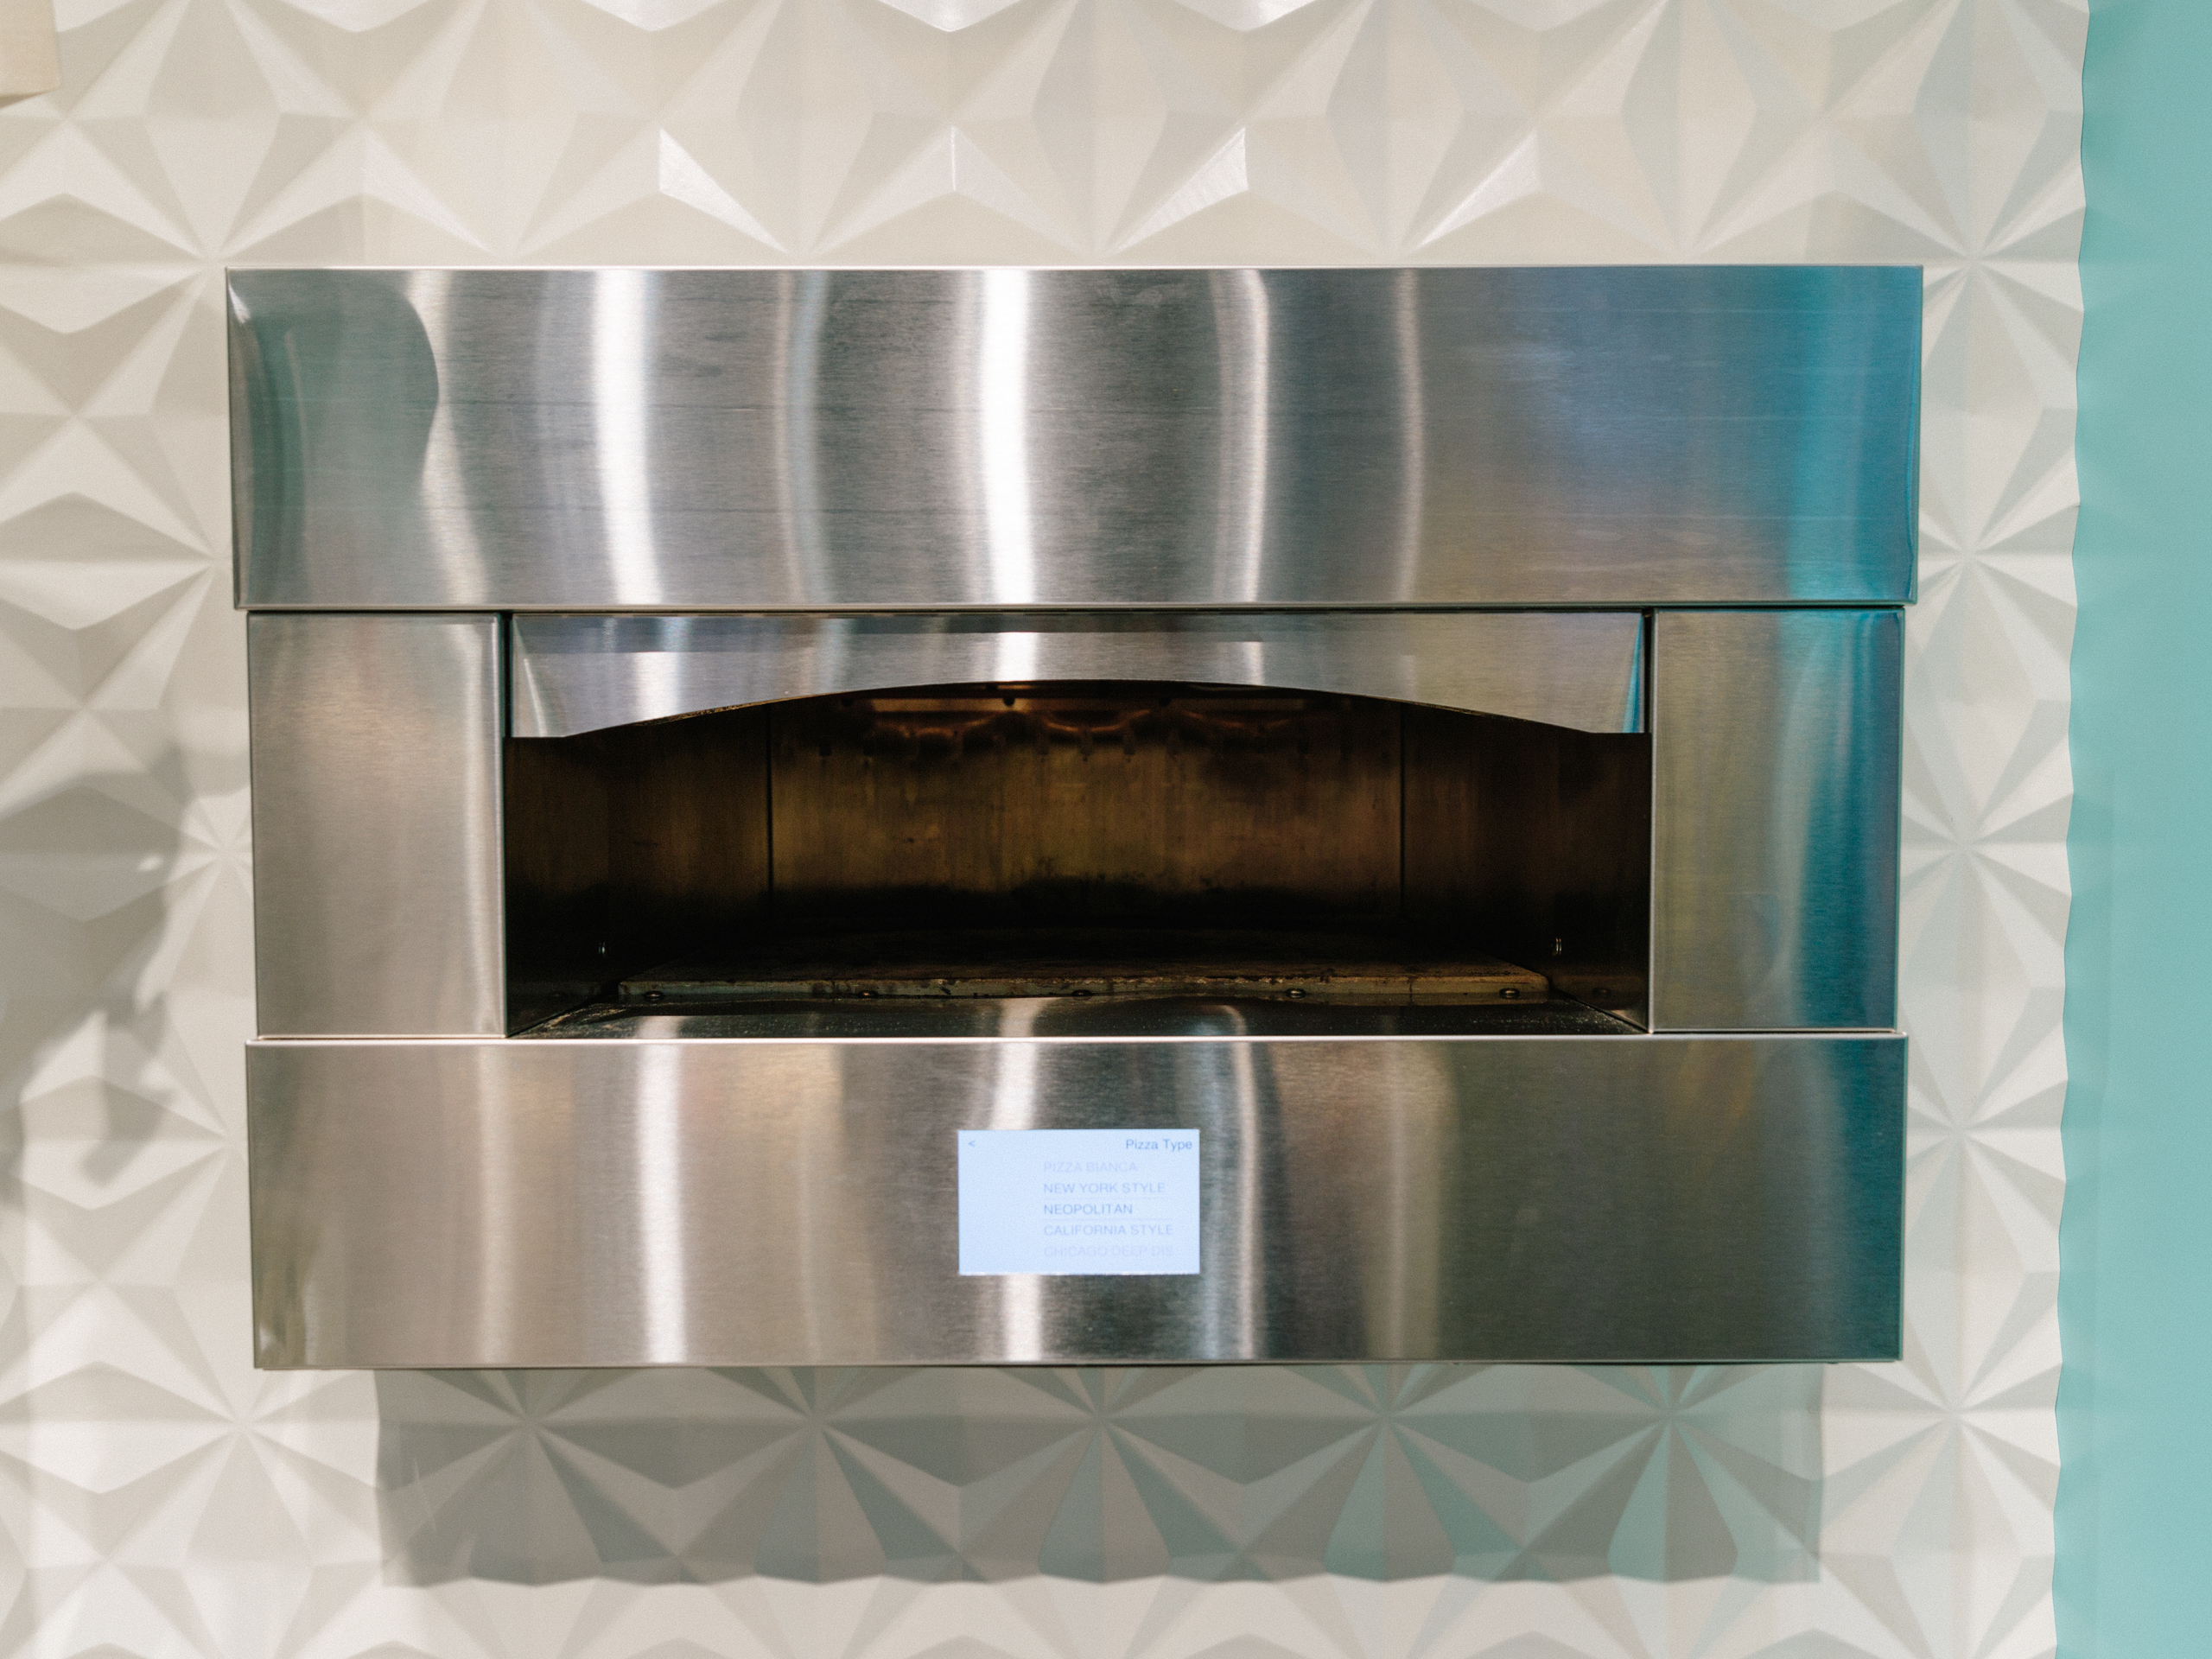 GE Monogram Pizza Oven